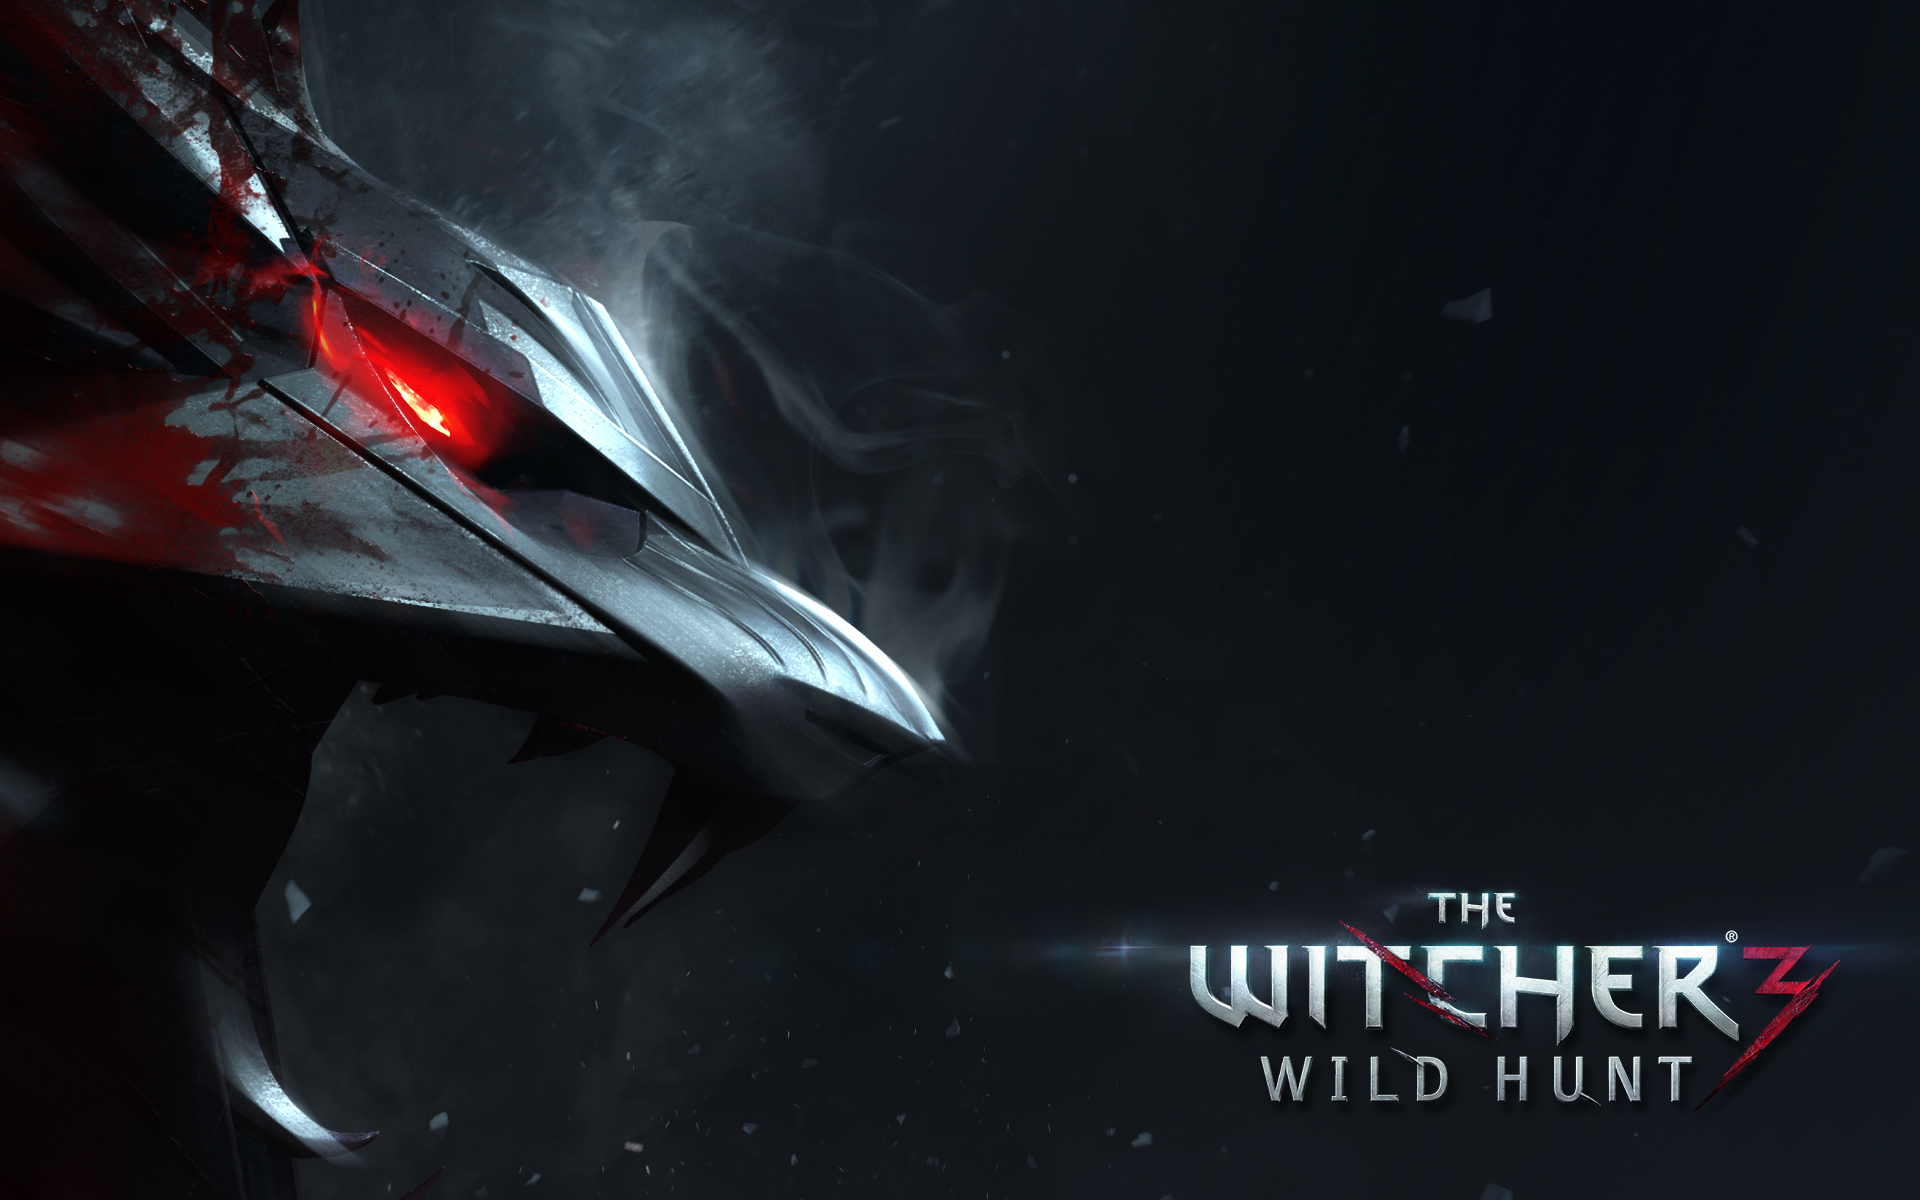 HD Wallpapers The Witcher 3 Wild Hunt